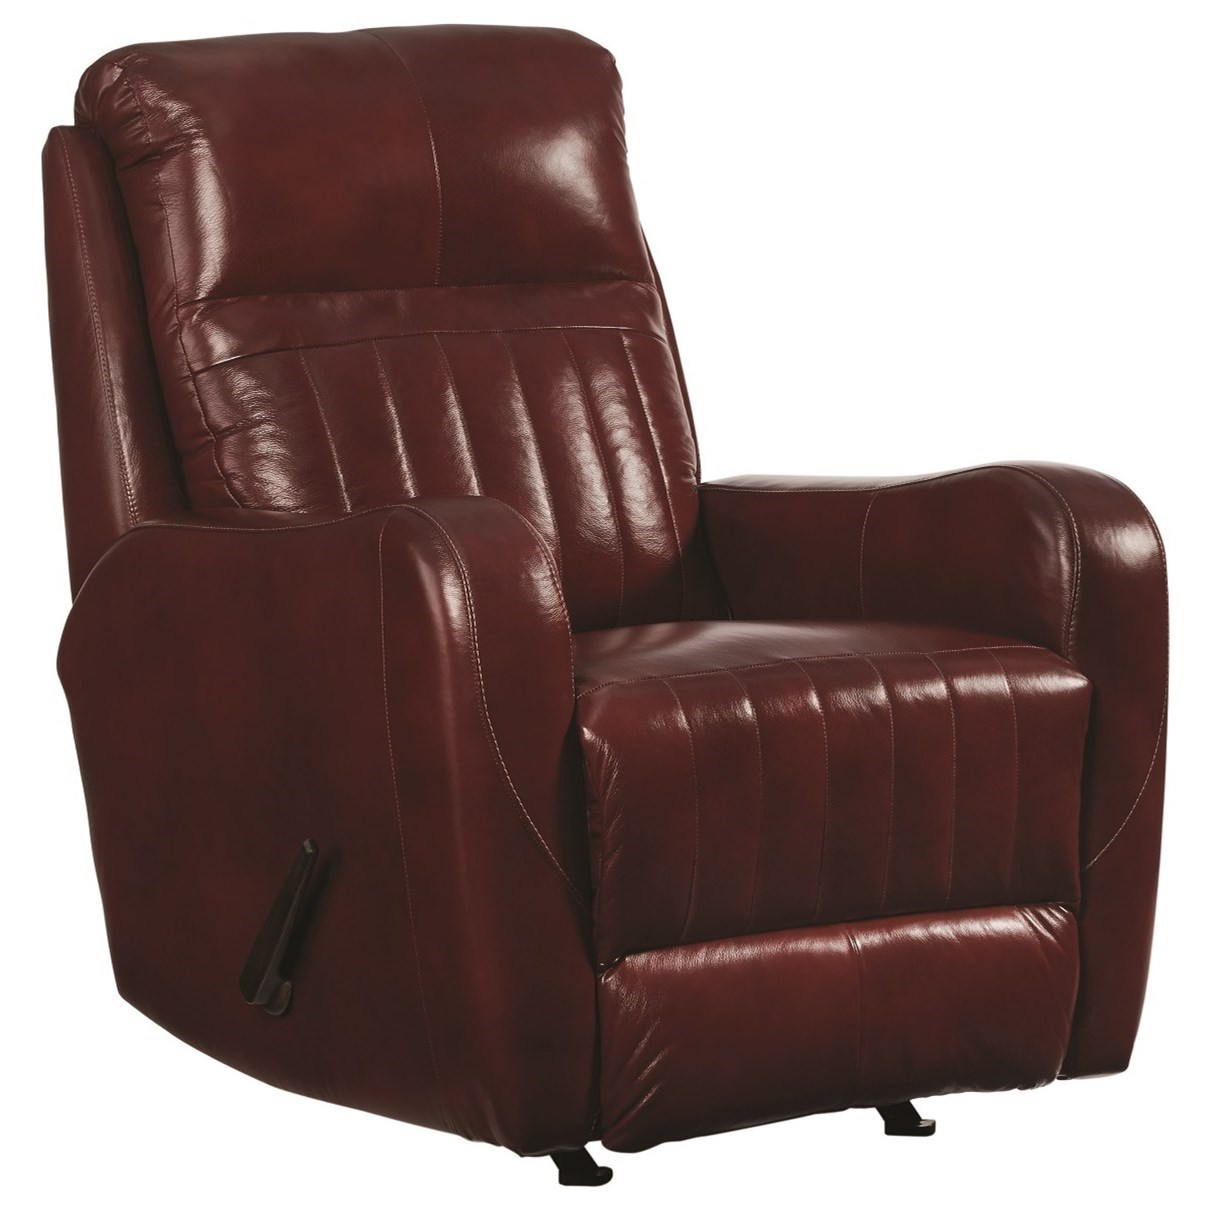 Racetrack Wall Hugger Power Recliner by Southern Motion at Lindy's Furniture Company